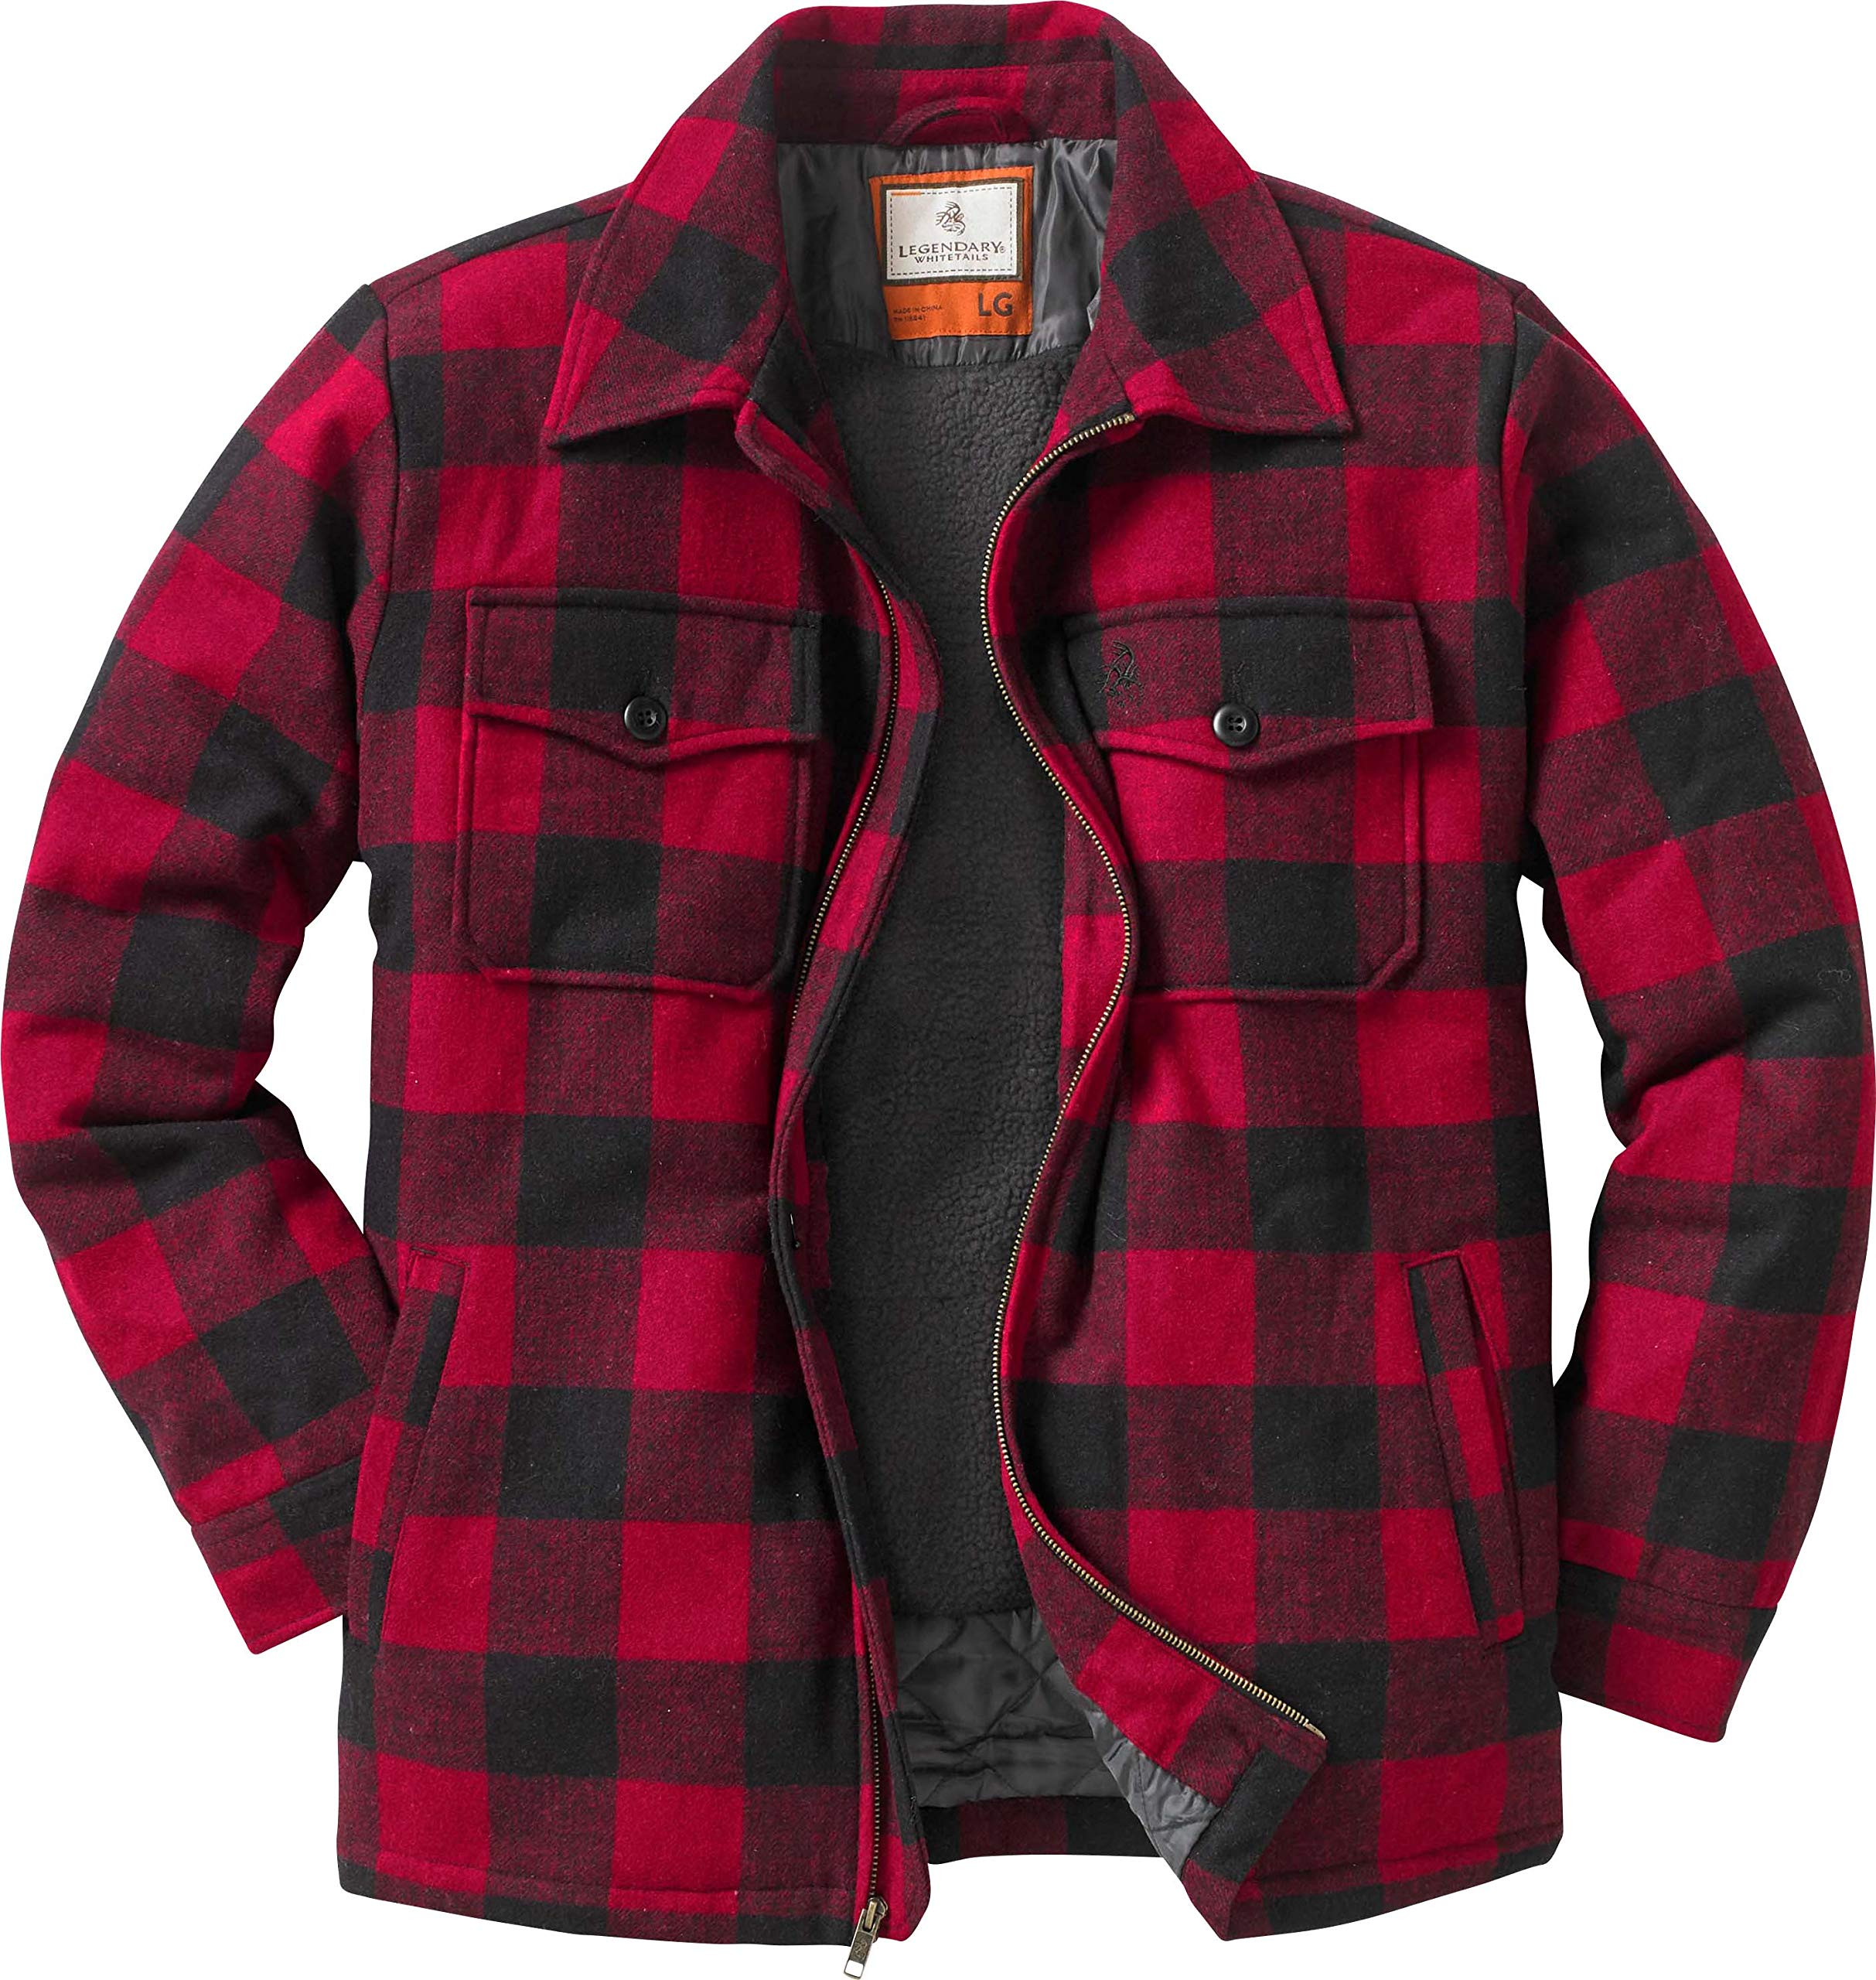 Legendary Whitetails Outdoorsman Jacket, Buffalo Plaid, XXXXX-Large by Legendary Whitetails